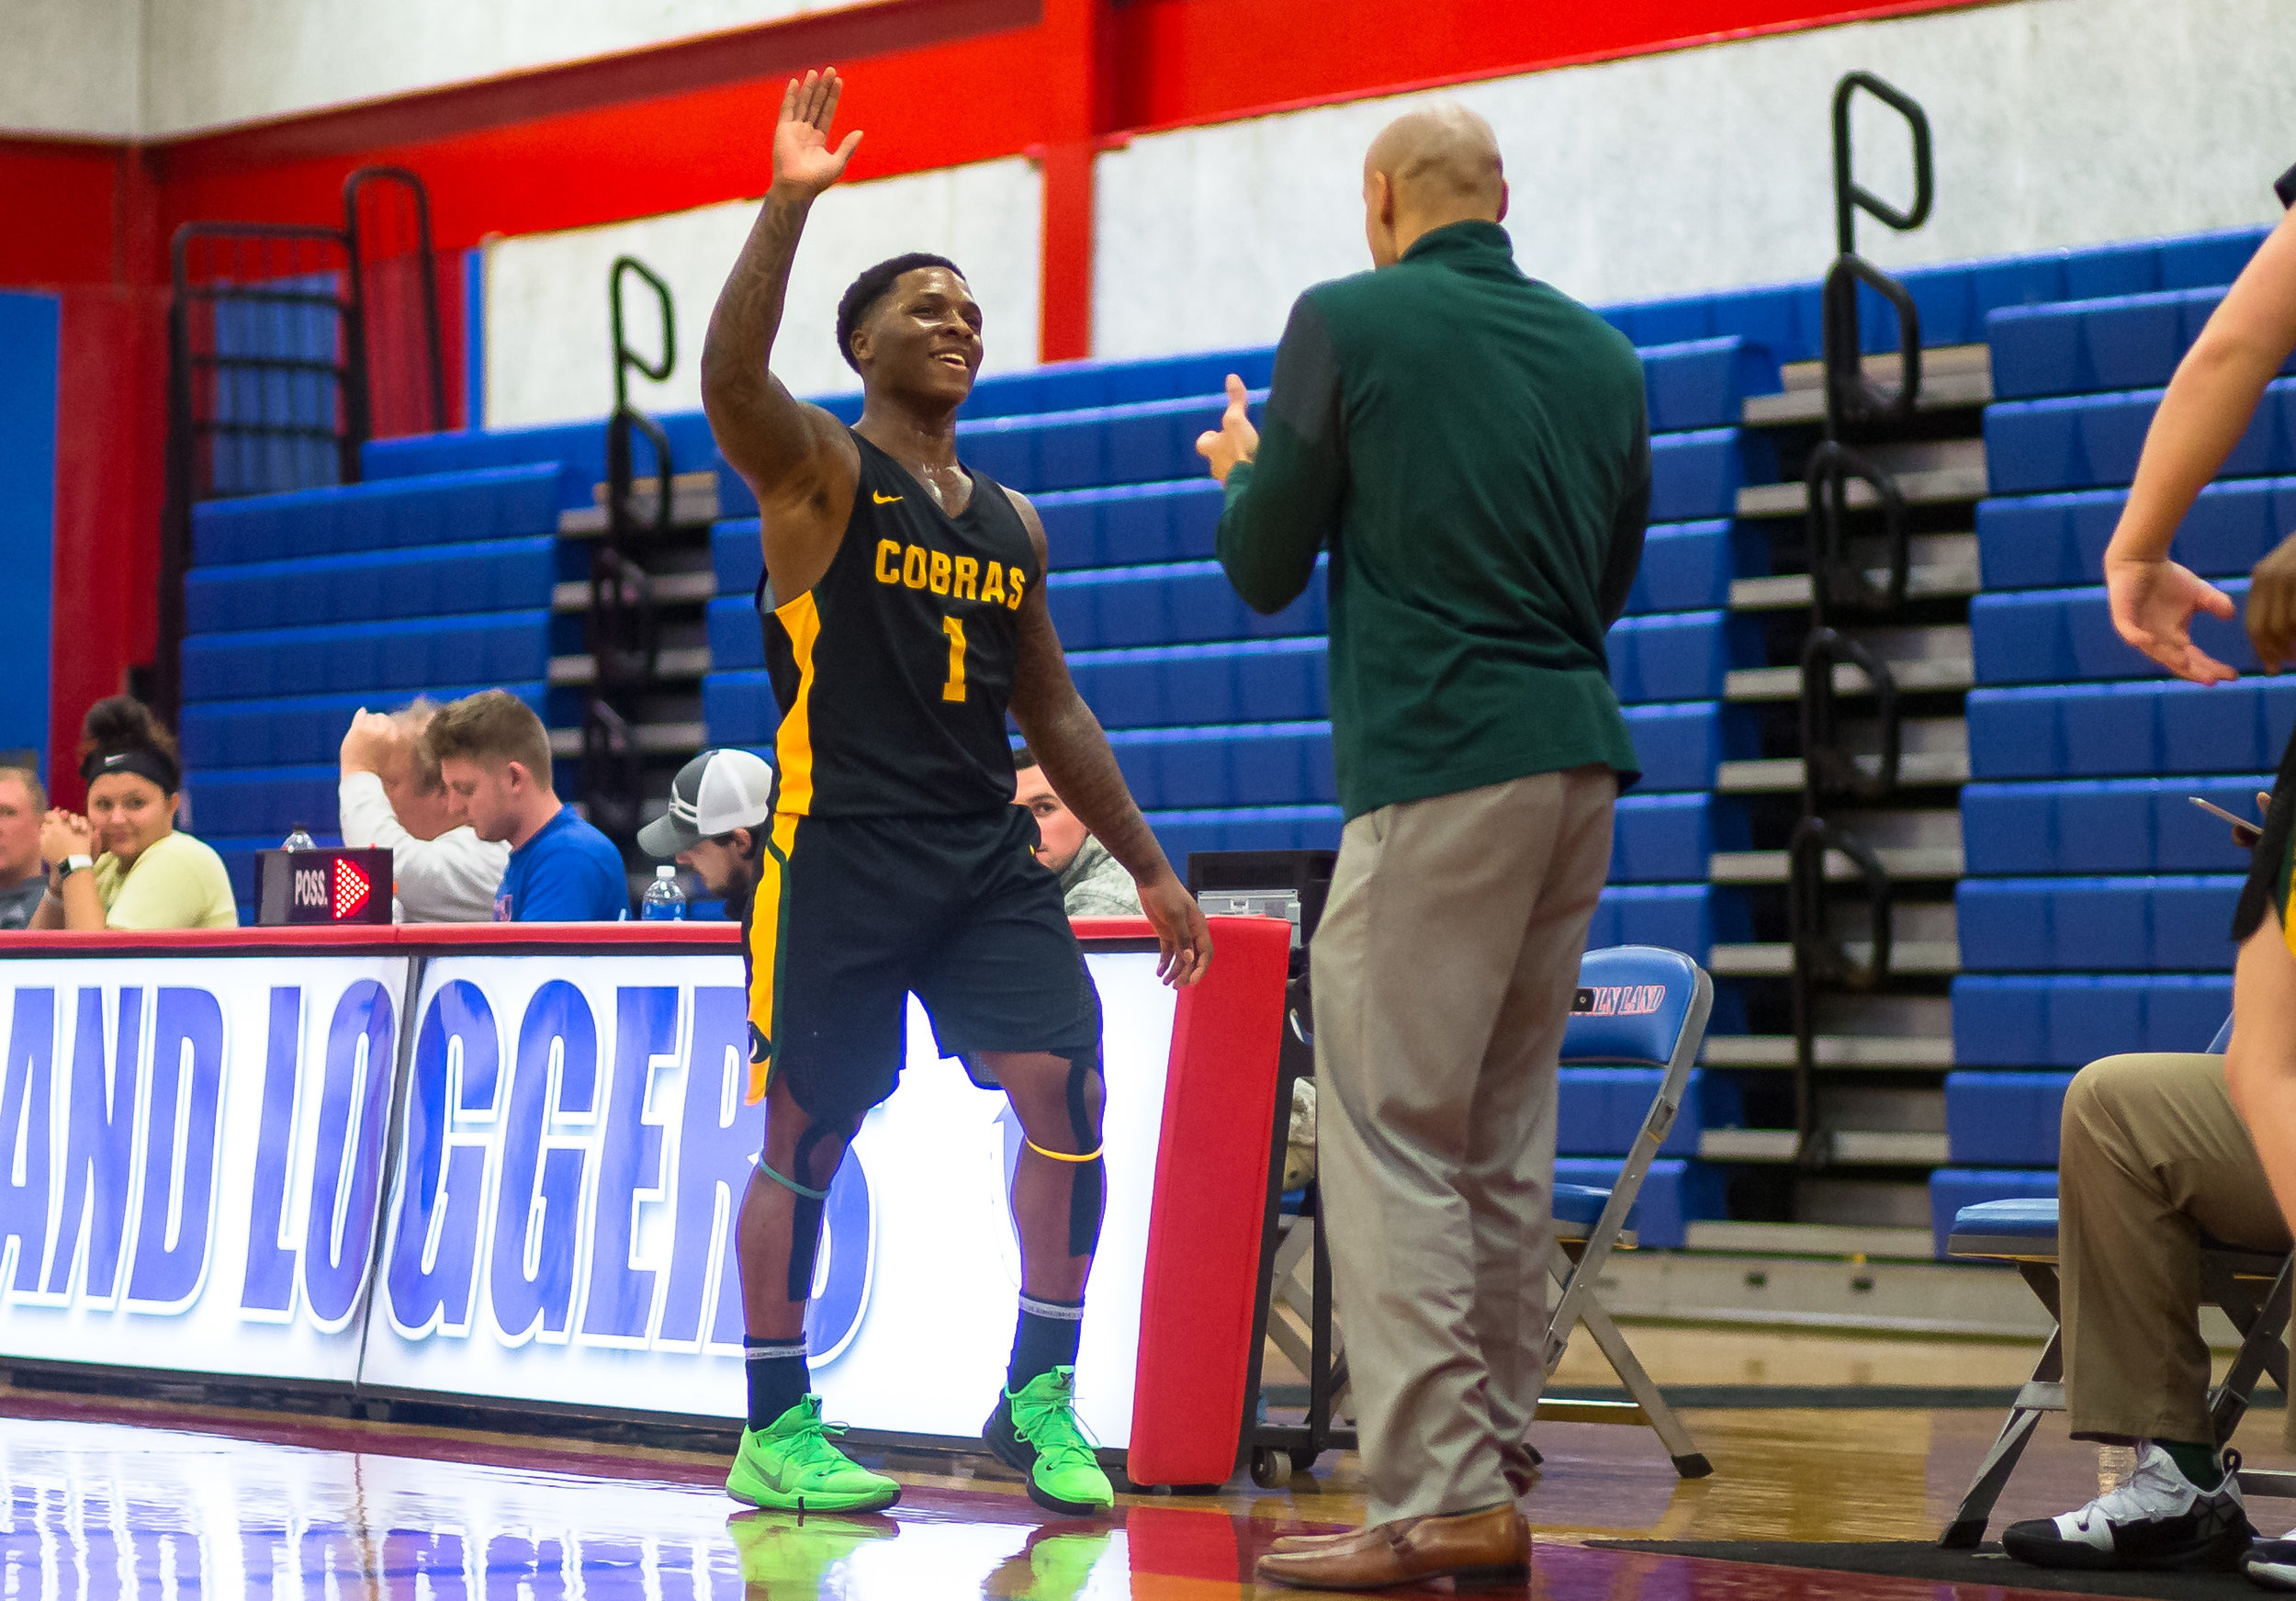 Parkland College's Yaakema Rose Jr. (1) gets a high five from Parkland College men's basketball head coach Anthony Figueroa as he comes off the floor as the Cobras take on Lincoln Land Community College in the second half at Lincoln Land Community College's Cass Gymnasium, Wednesday, Feb. 20, 2019, in Springfield, Ill. [Justin L. Fowler/The State Journal-Register]